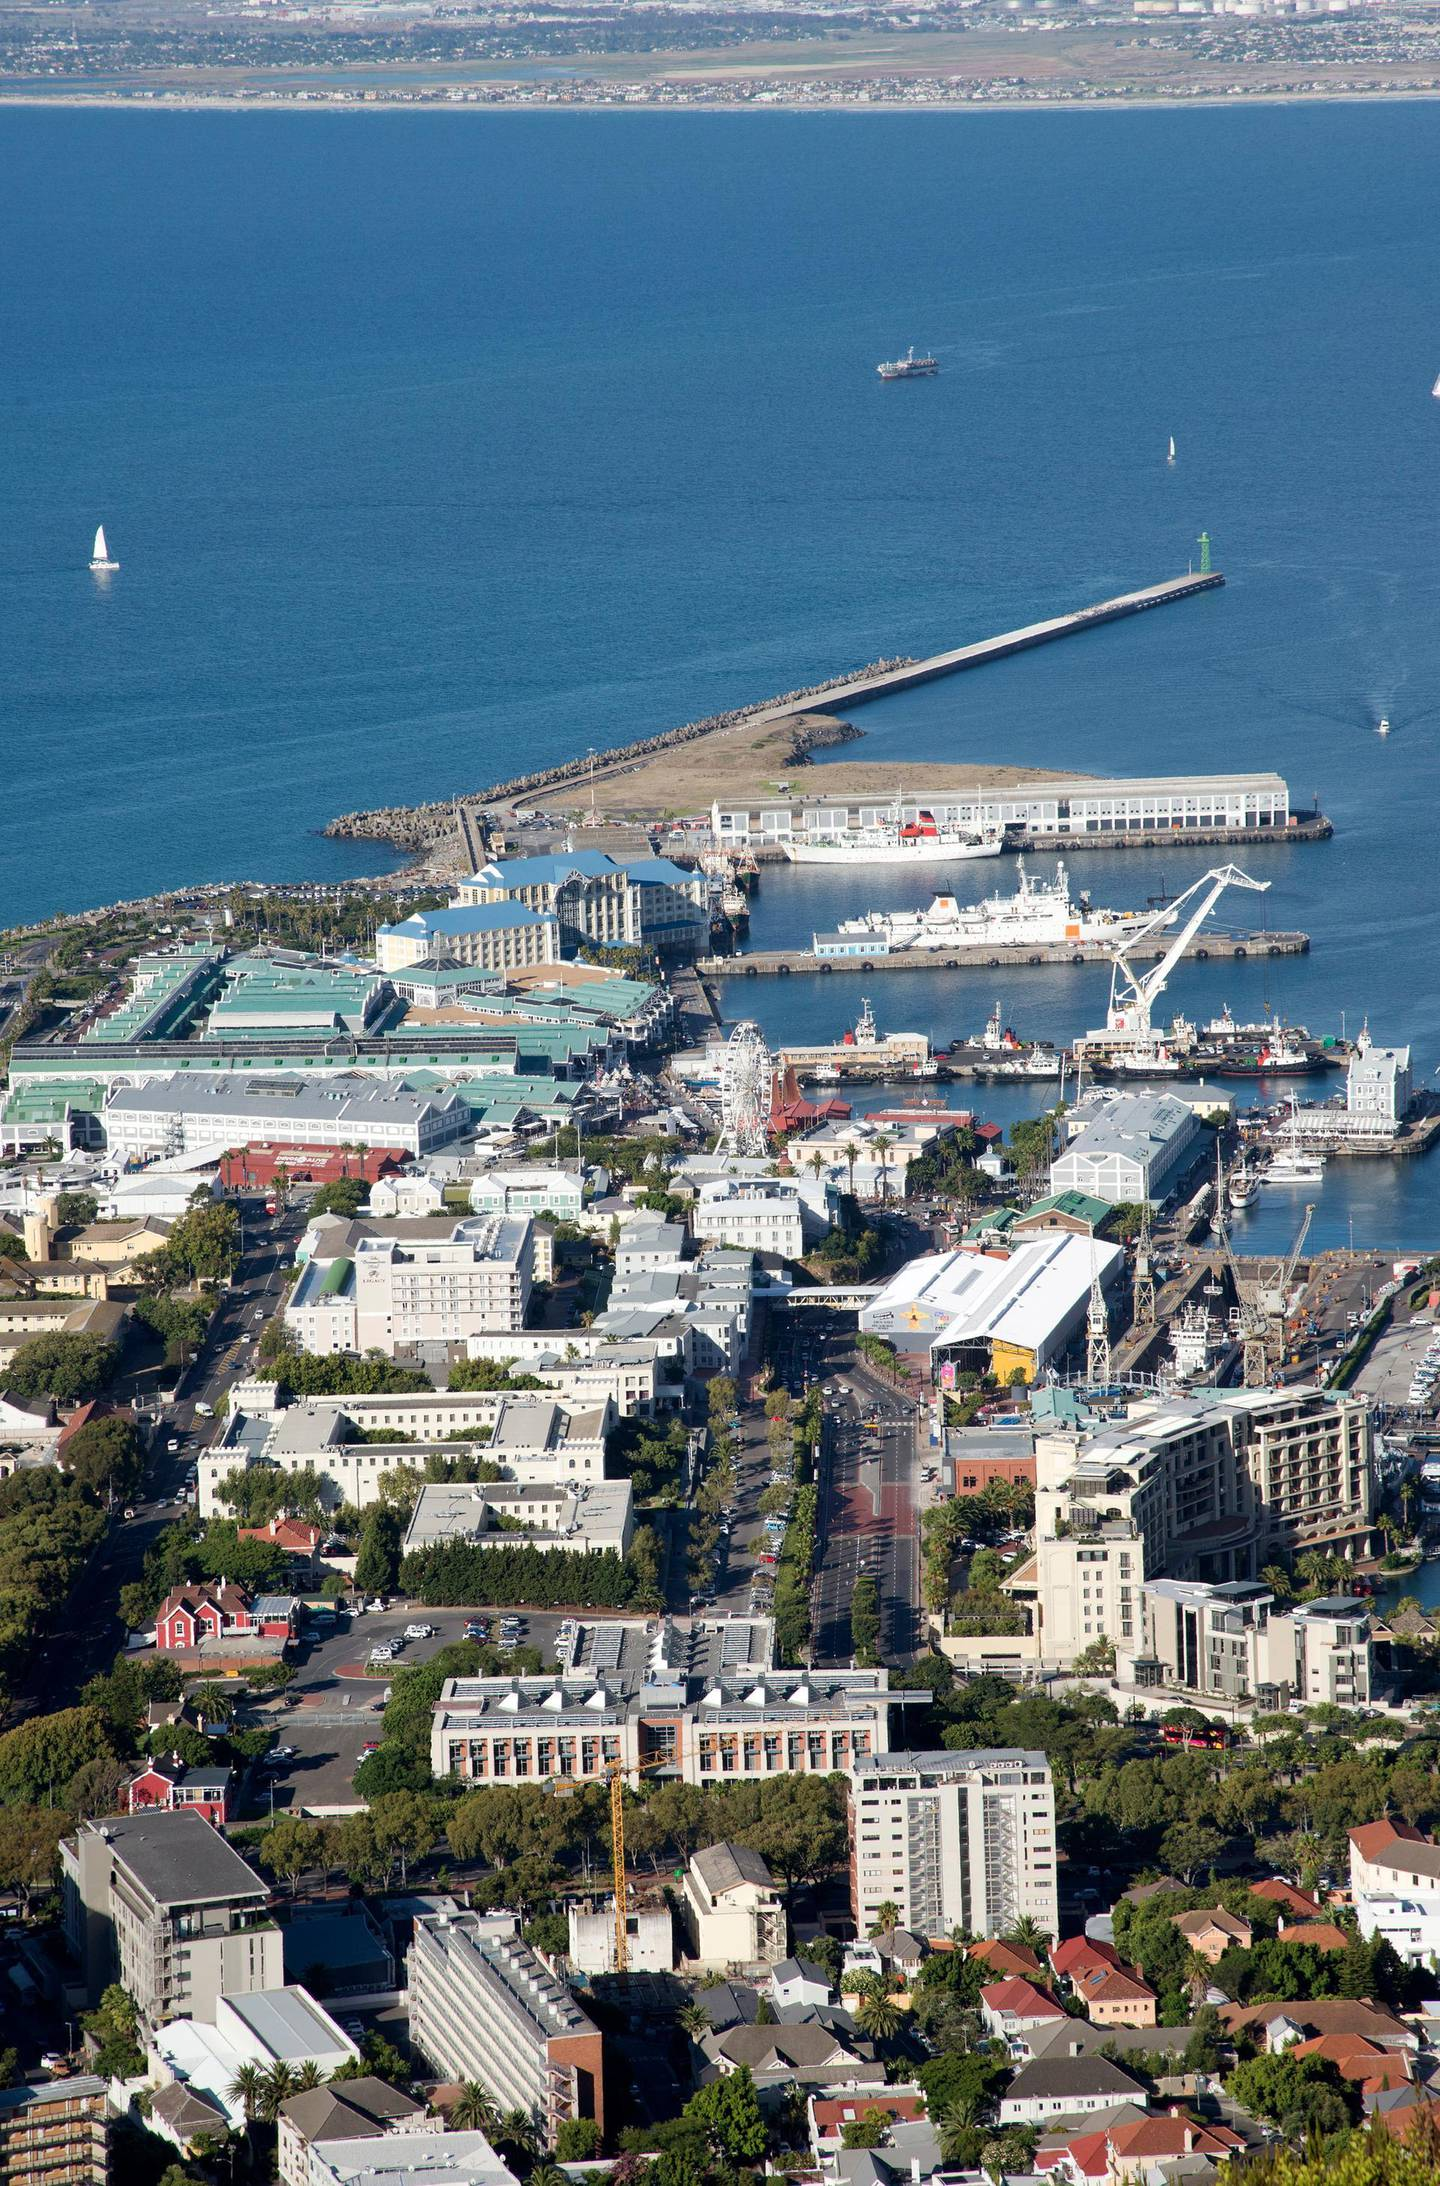 Cape Town Waterfront harbor and Table Bay South Africa. (Photo by: Education Images/UIG via Getty Images)